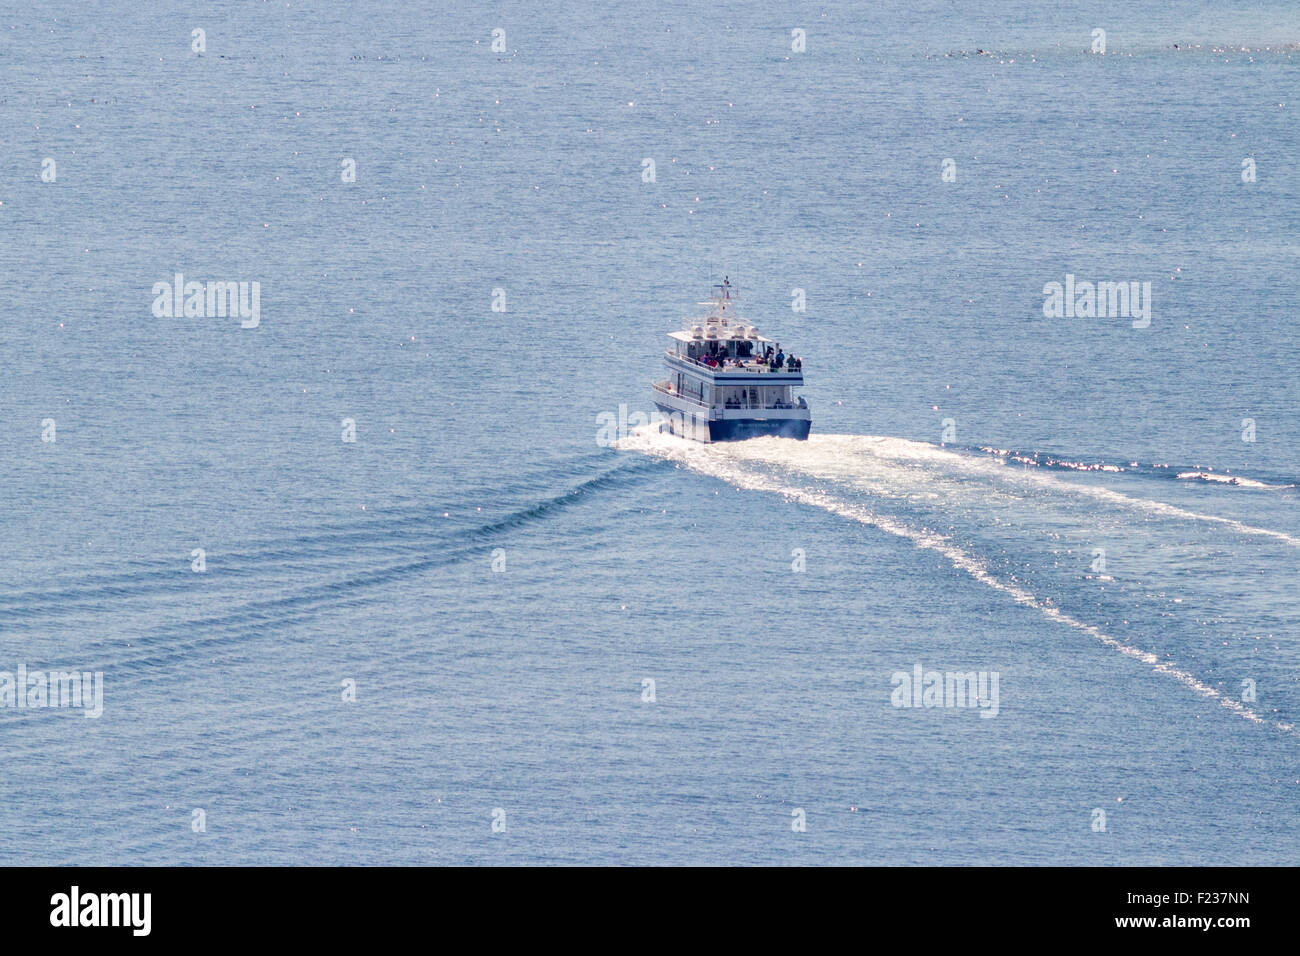 A whale watch boat traveling to see the whales. - Stock Image